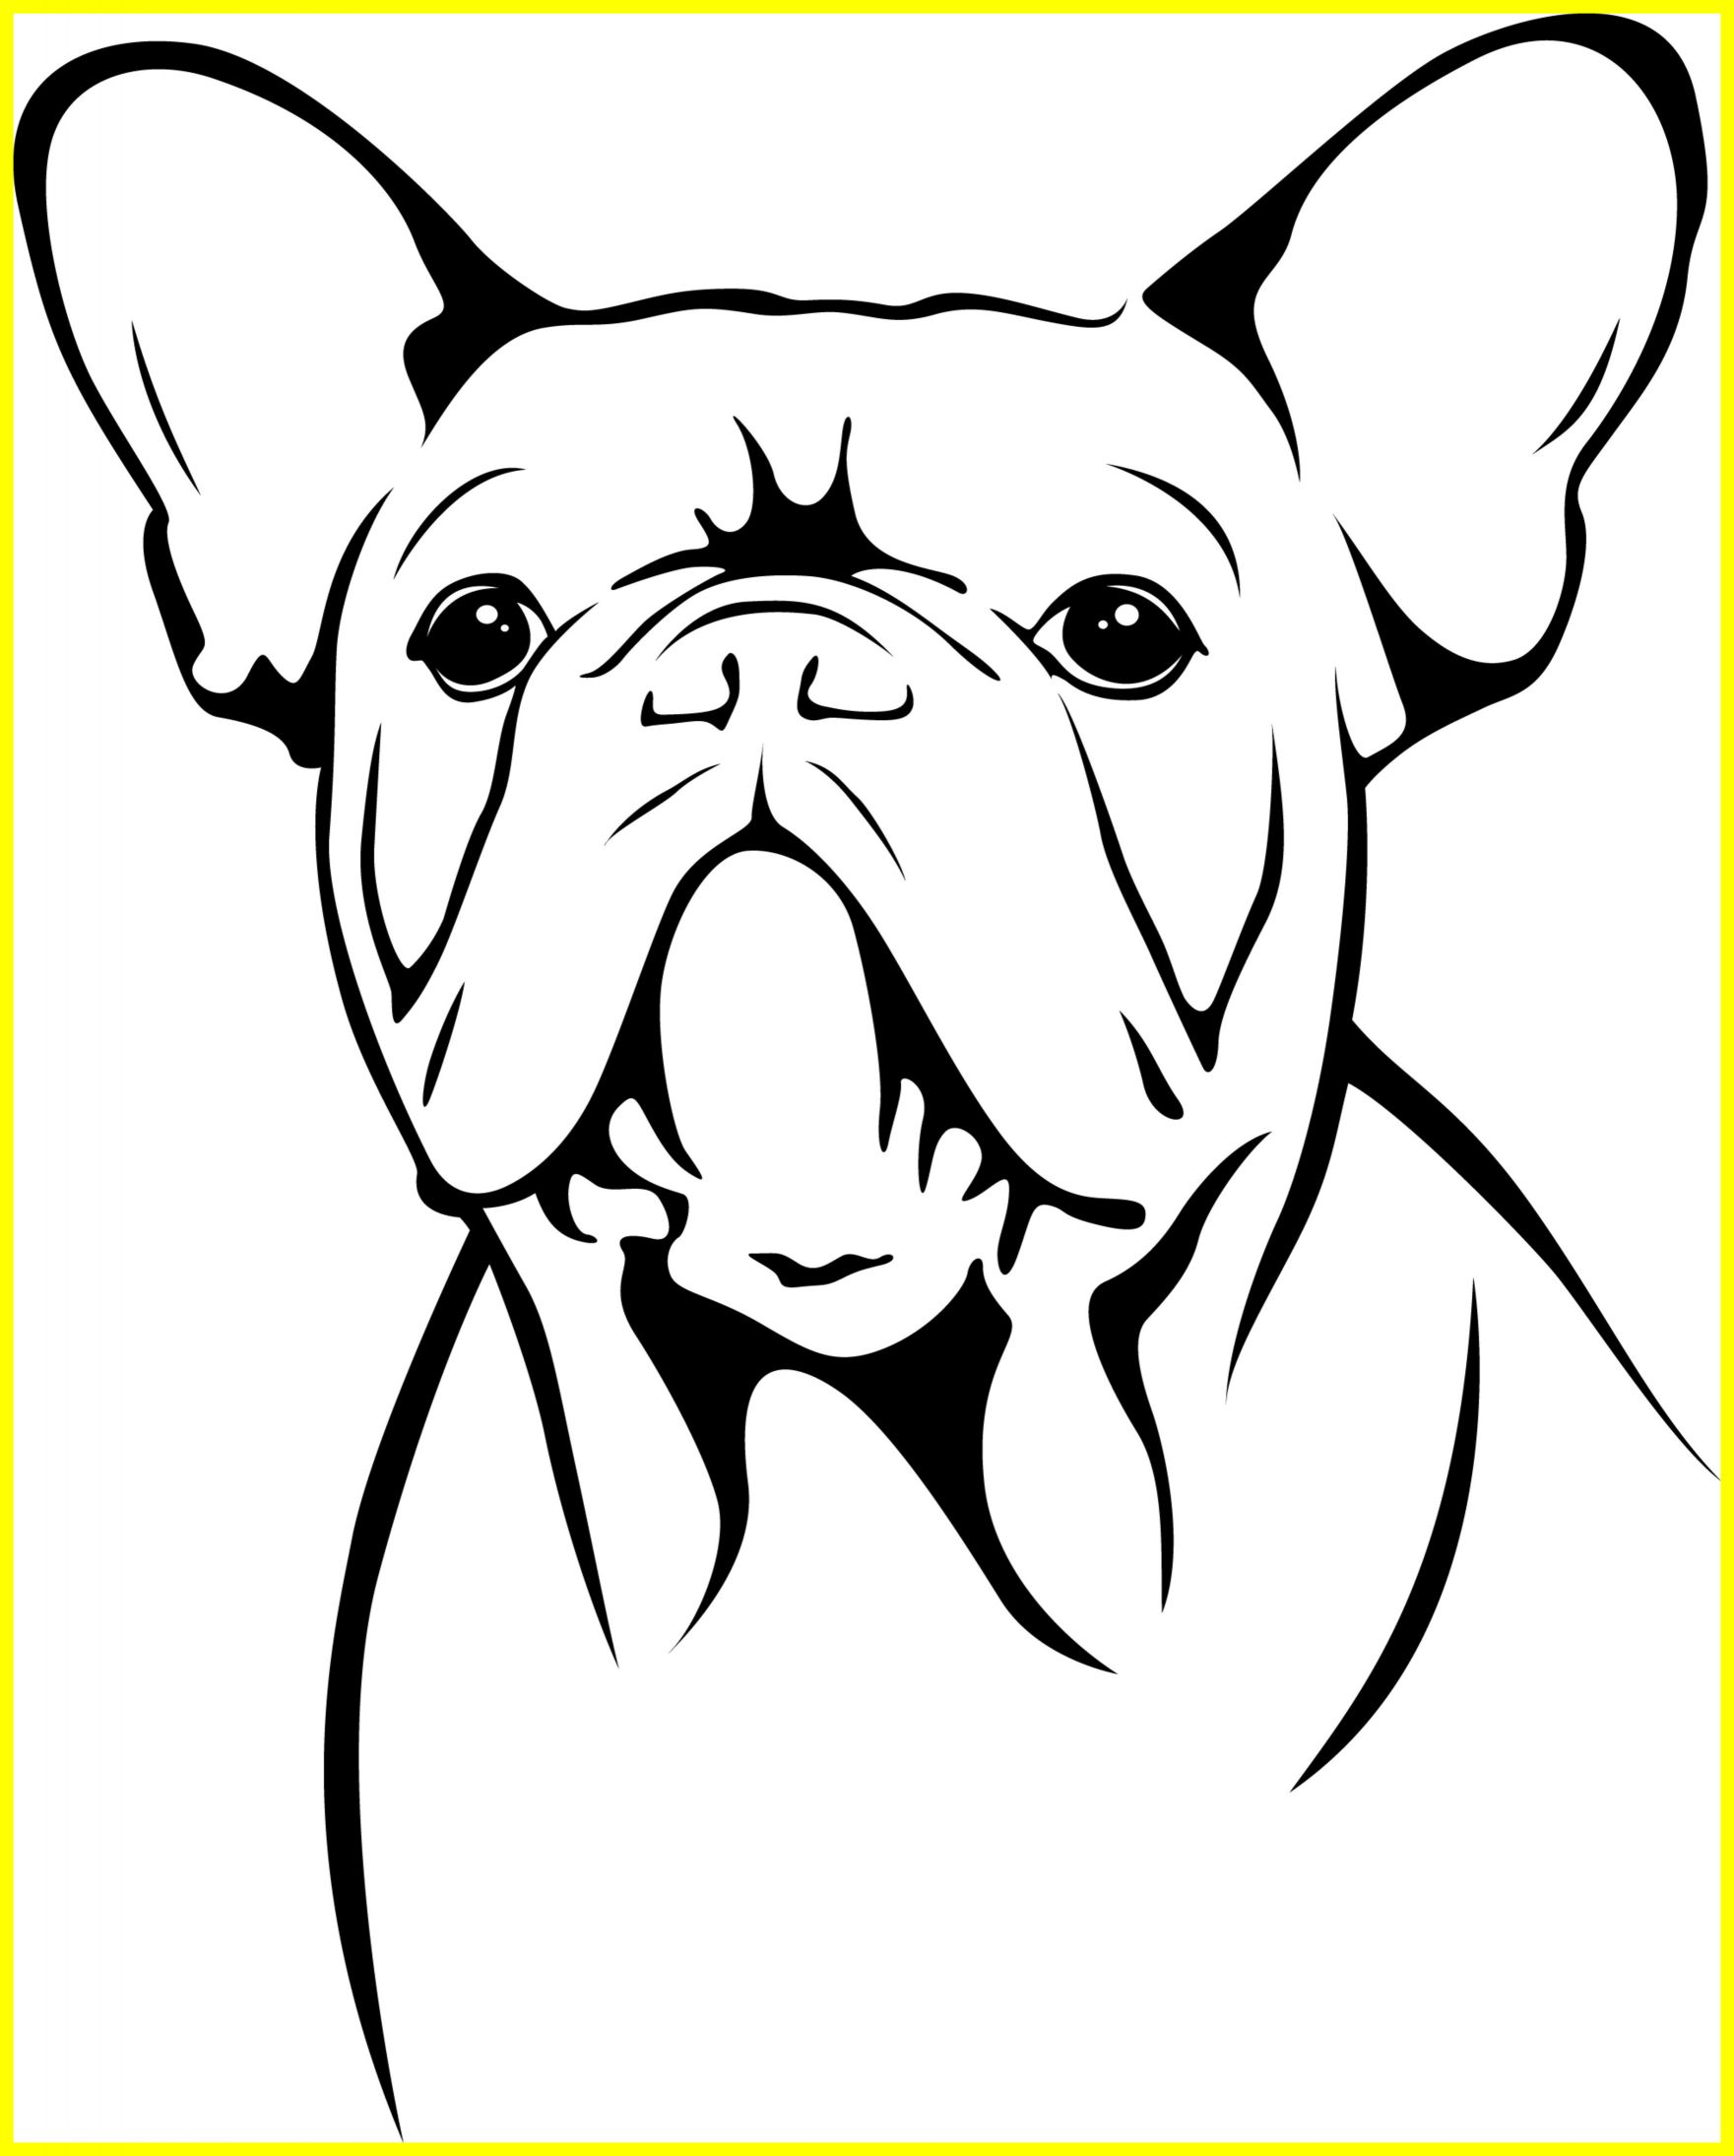 1761x2189 Best Bulldog Drawing At Getdrawings For Personal Use Image Puppy